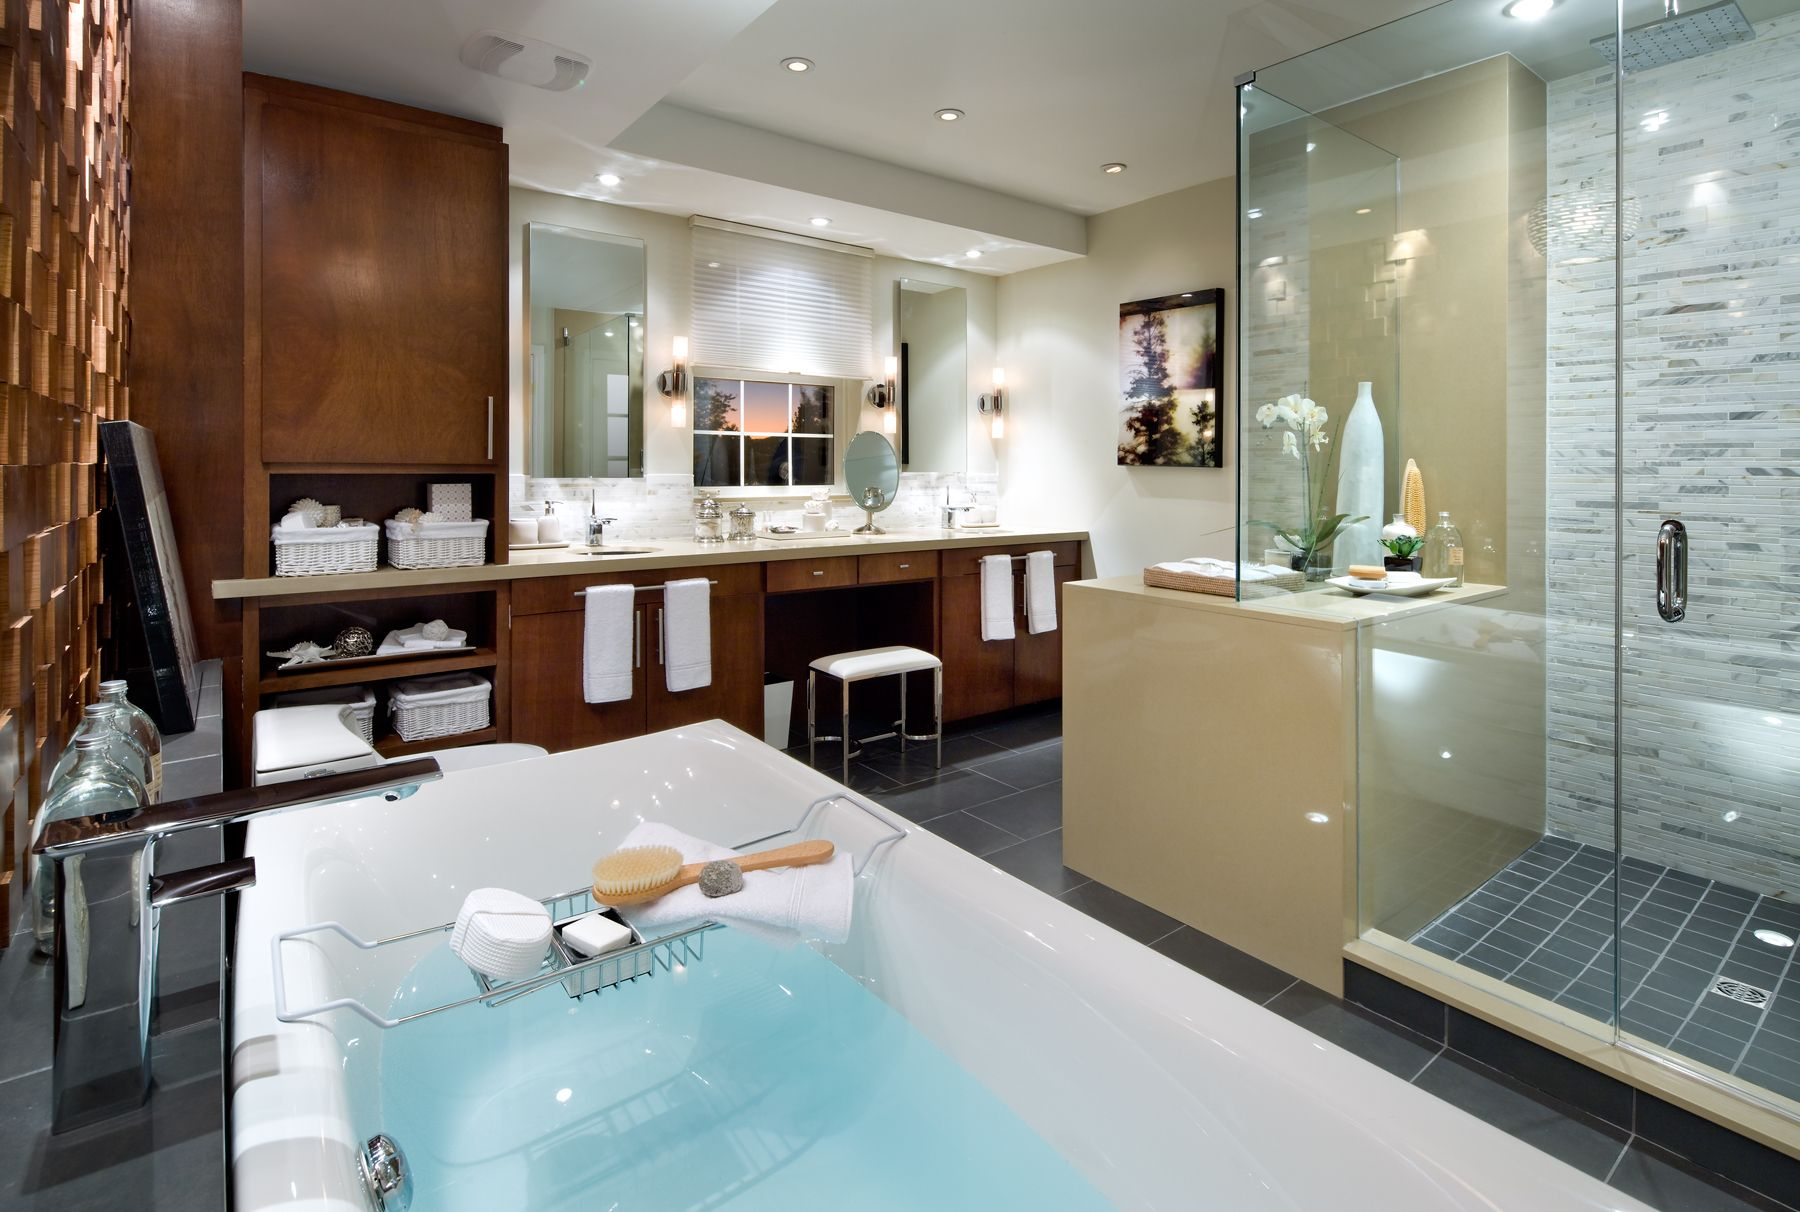 5 Stunning Bathrooms By Candice Olson: Fusion Television